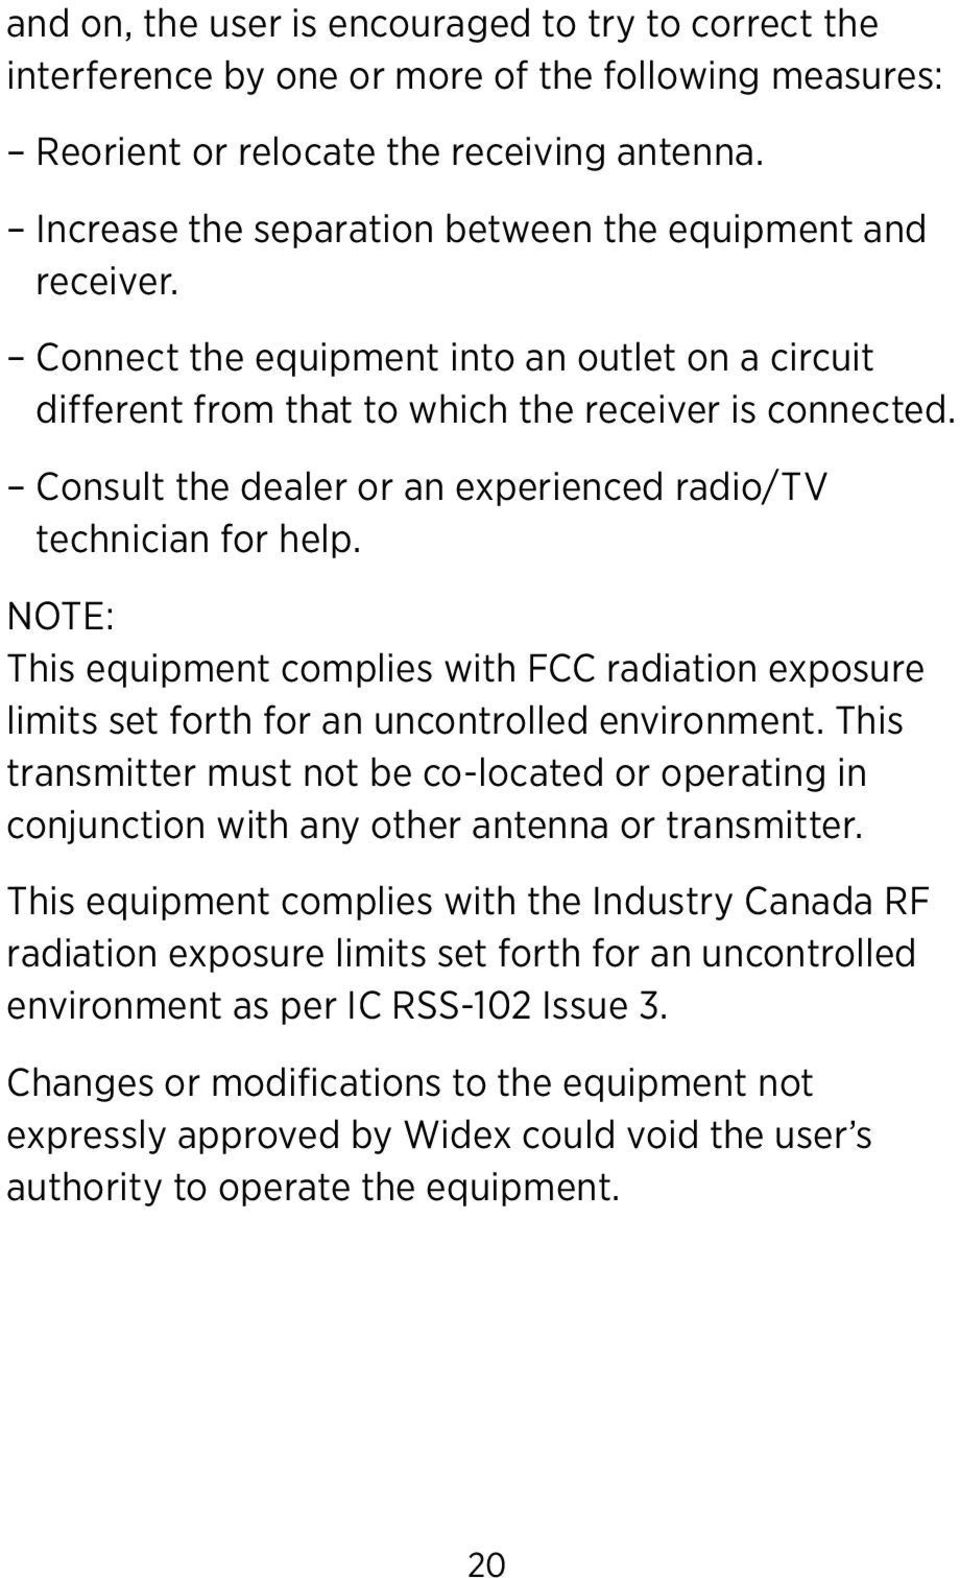 Consult the dealer or an experienced radio/tv technician for help. NOTE: This equipment complies with FCC radiation exposure limits set forth for an uncontrolled environment.